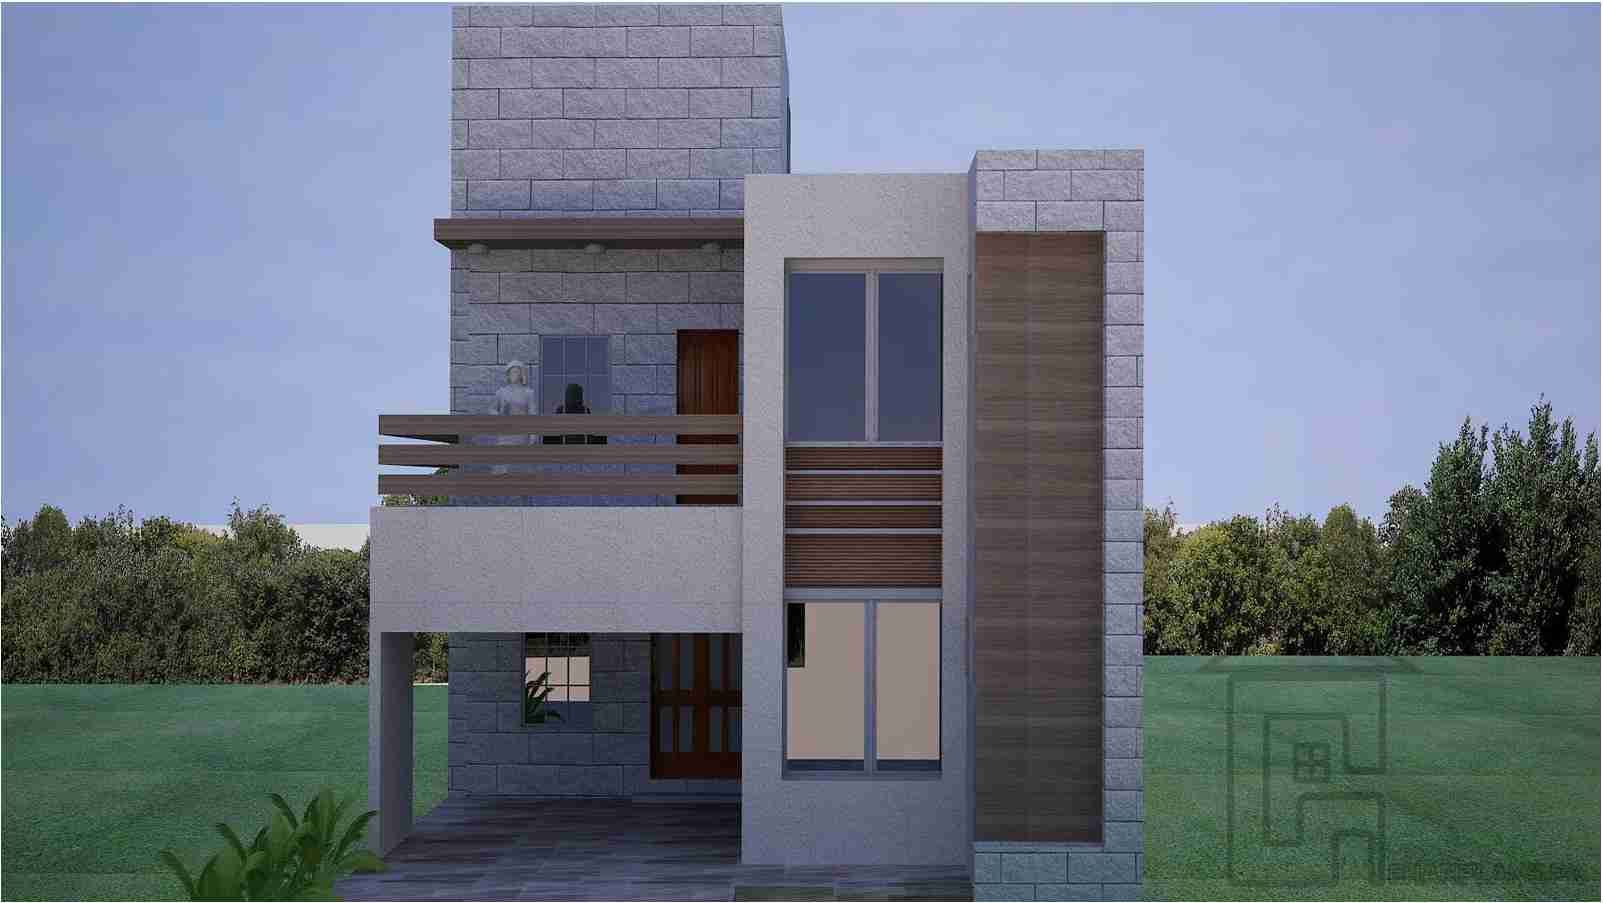 Front Design Of 5 Marla House Part - 33: House · This Is A Standard 5 Marla House Front Design ...